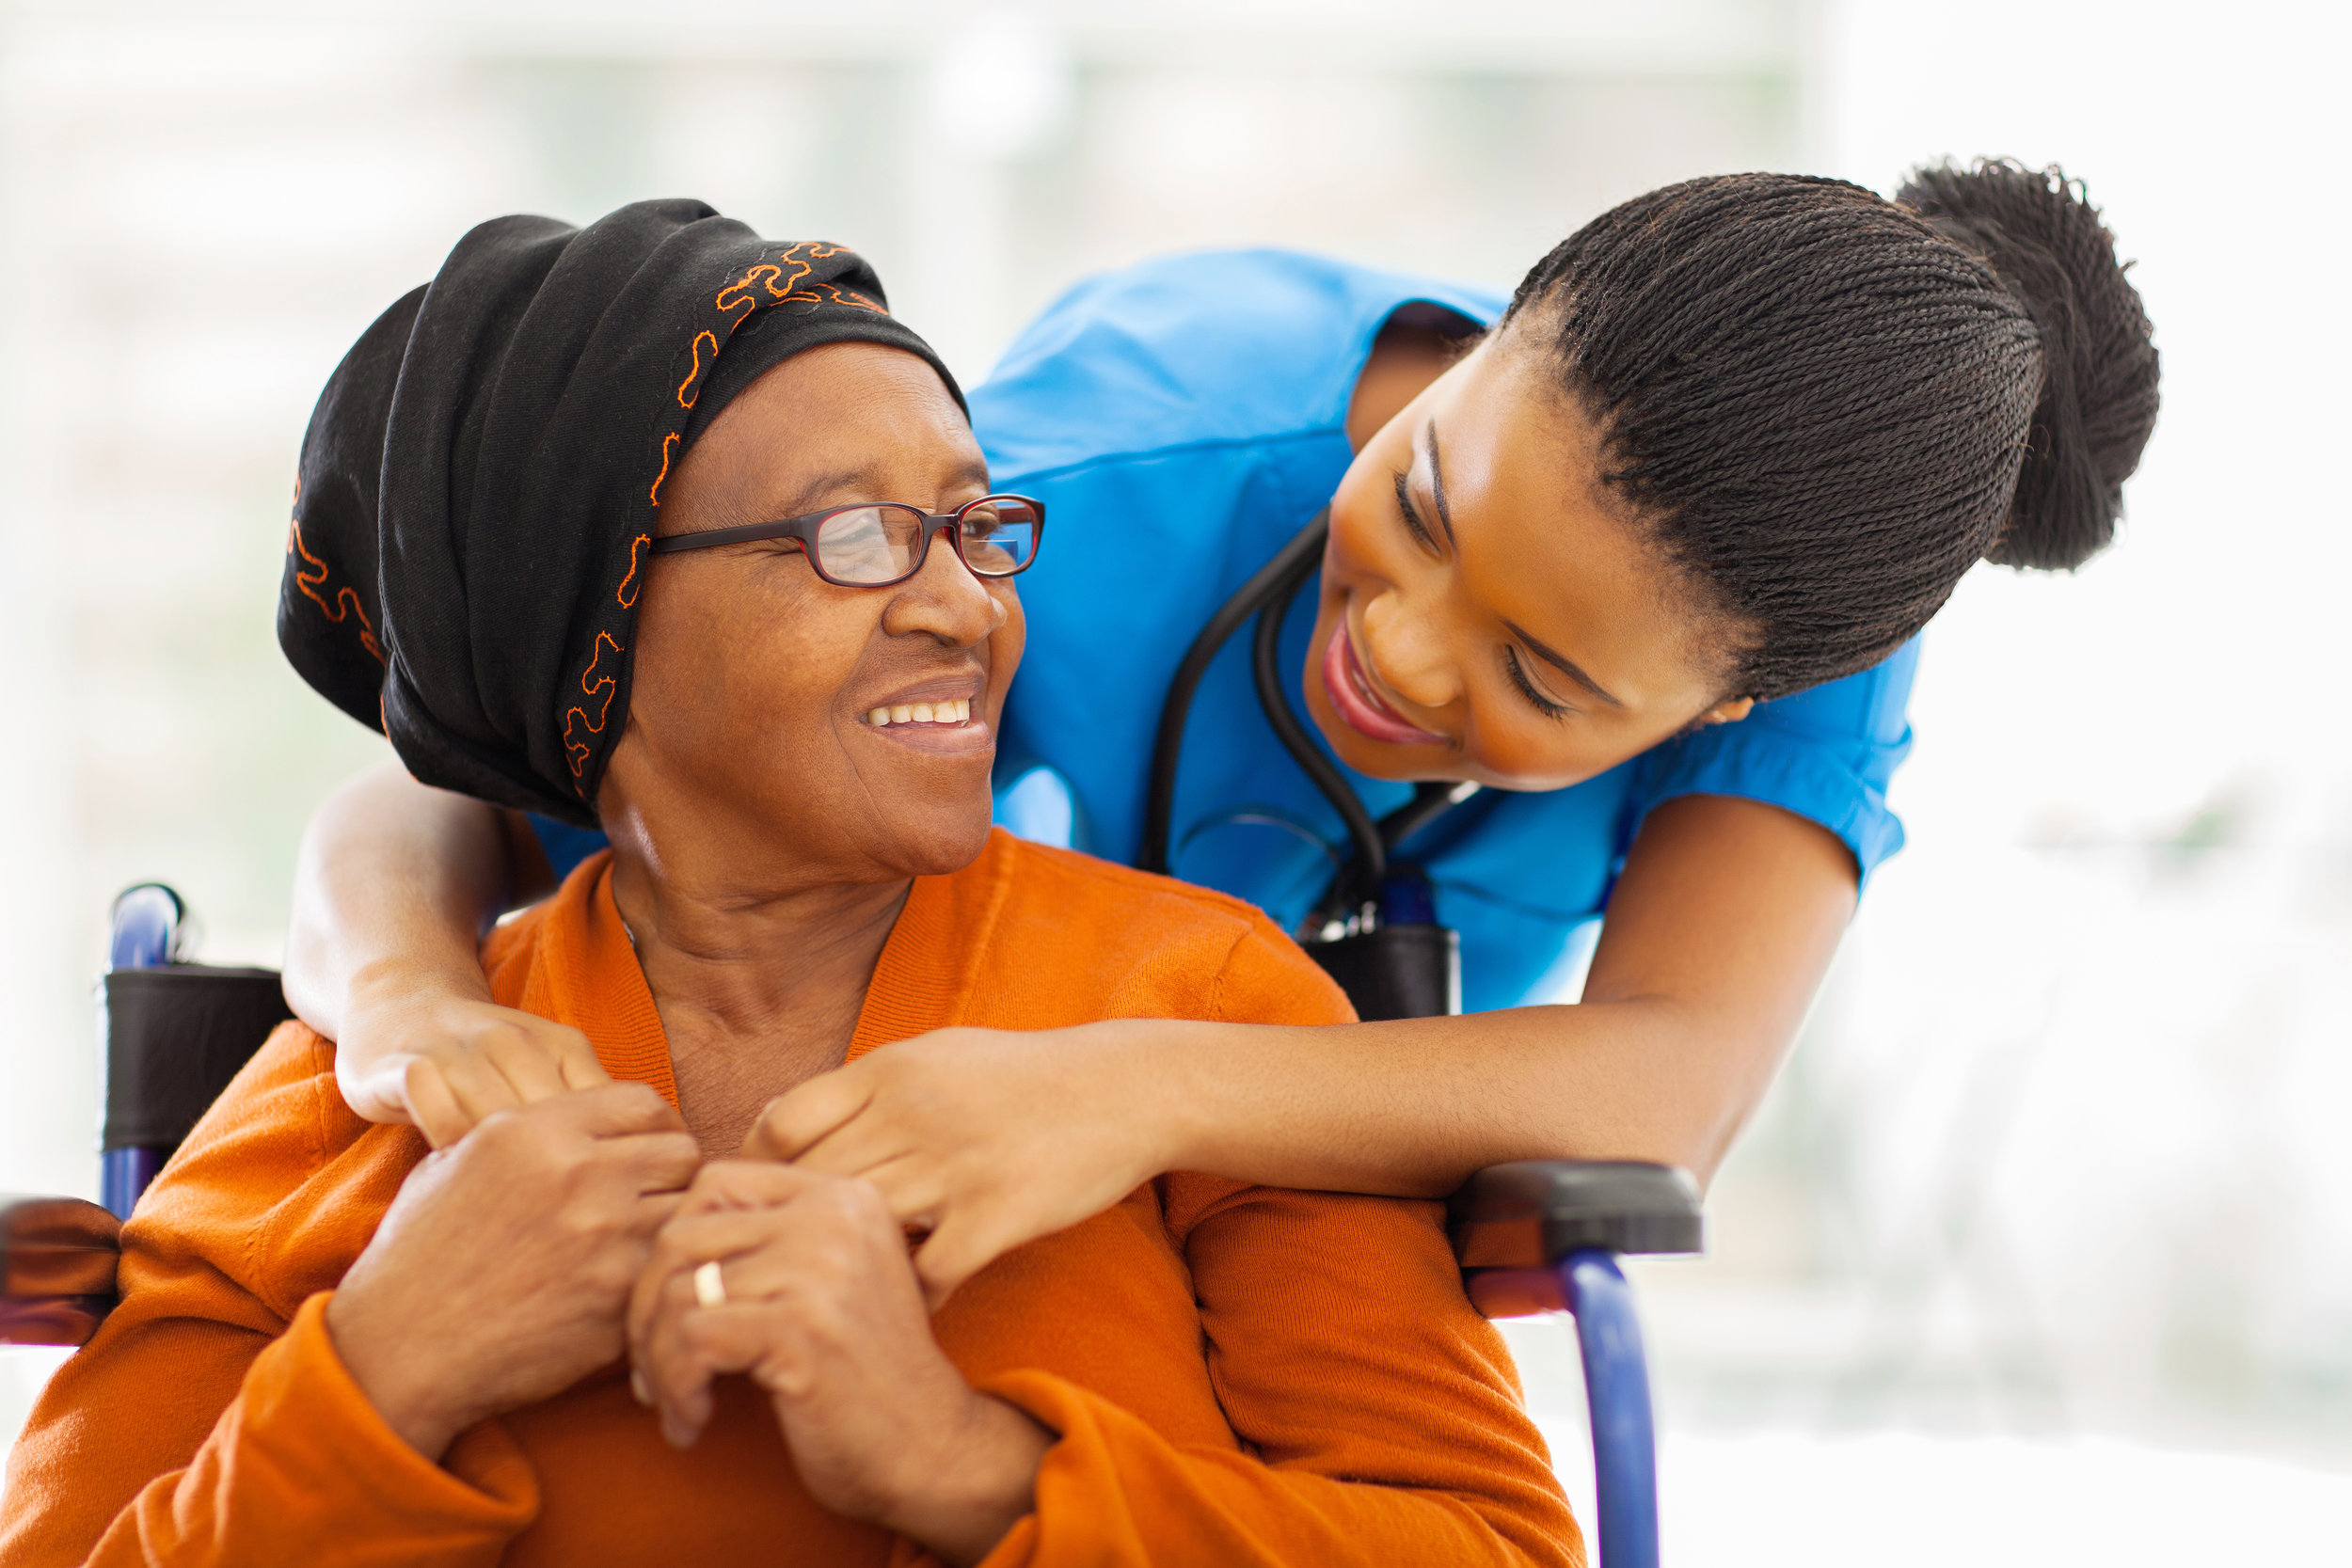 PERSONAL CARE ASSISTANTS - In addition to providing assistance with daily living activities our Personal Care Assistants (PCAs) also provide advanced assistance including bathing, toileting, grooming, dressing, mobility and transferring.